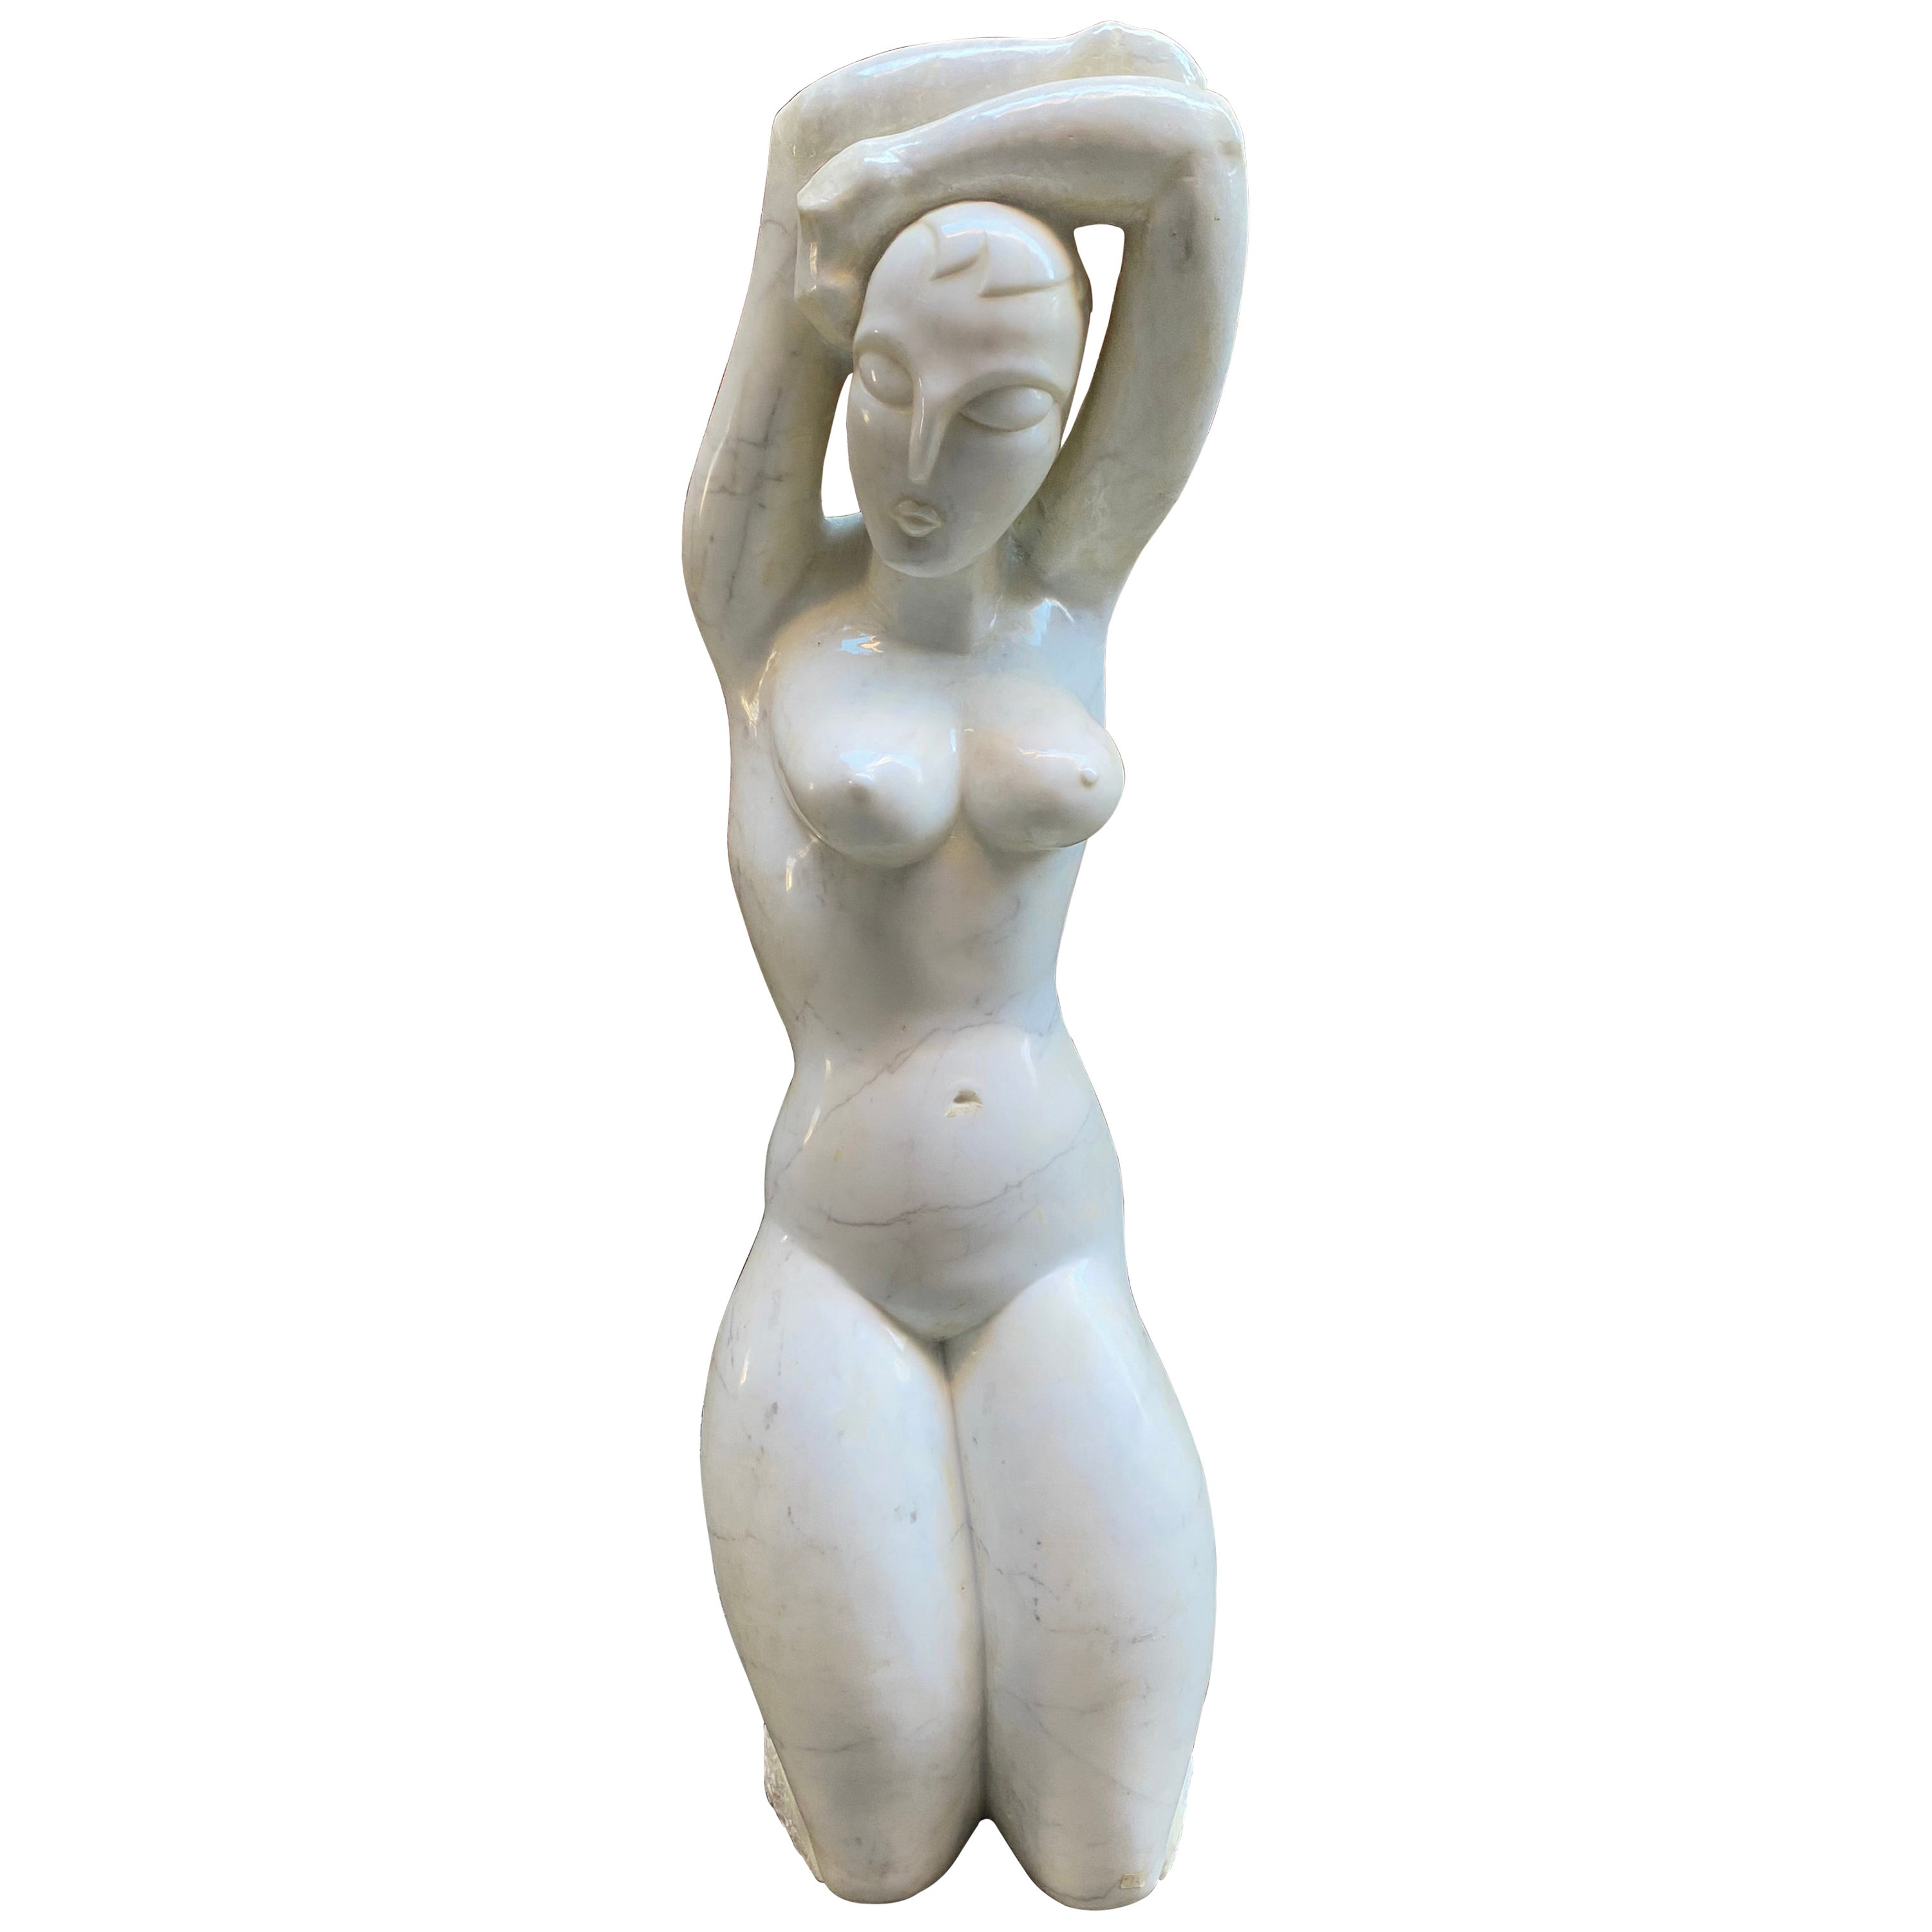 Modiglianiesque Contrapposto Standing Nude Marble Sculpture